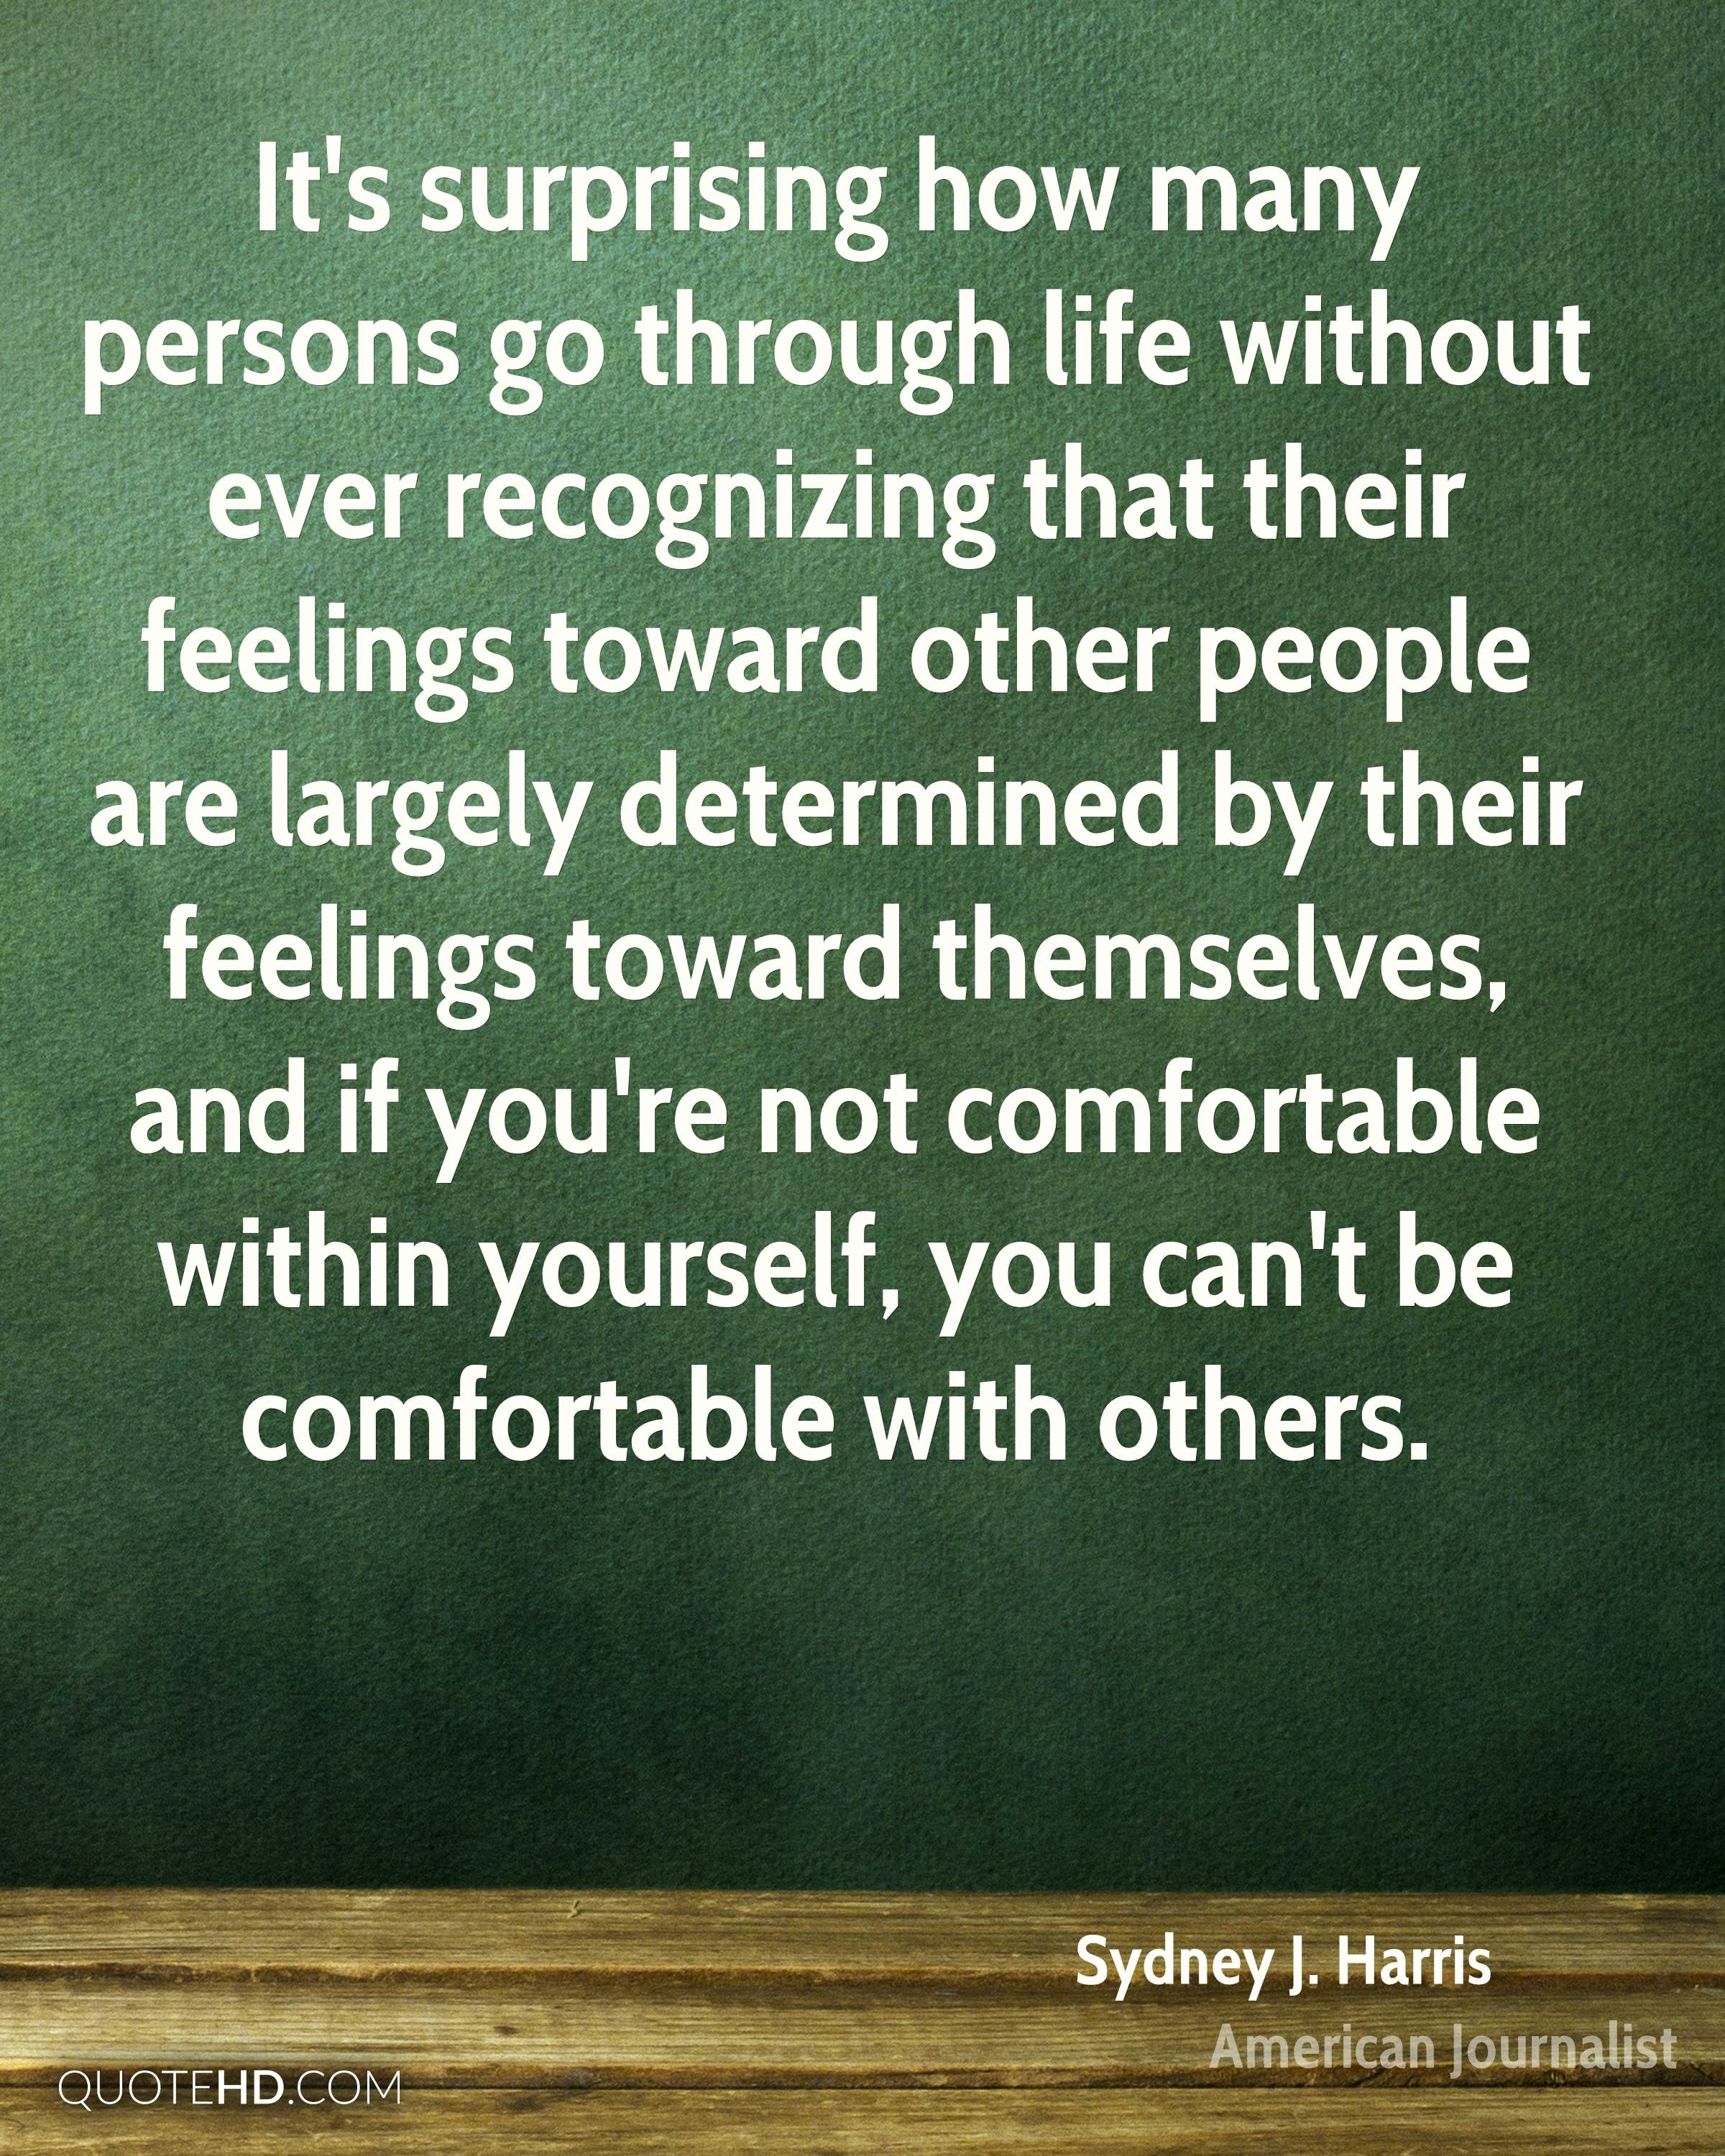 It's surprising how many persons go through life without ever recognizing that their feelings toward other people are largely determined by their feelings toward themselves, and if you're not comfortable within yourself, you can't be comfortable with others.